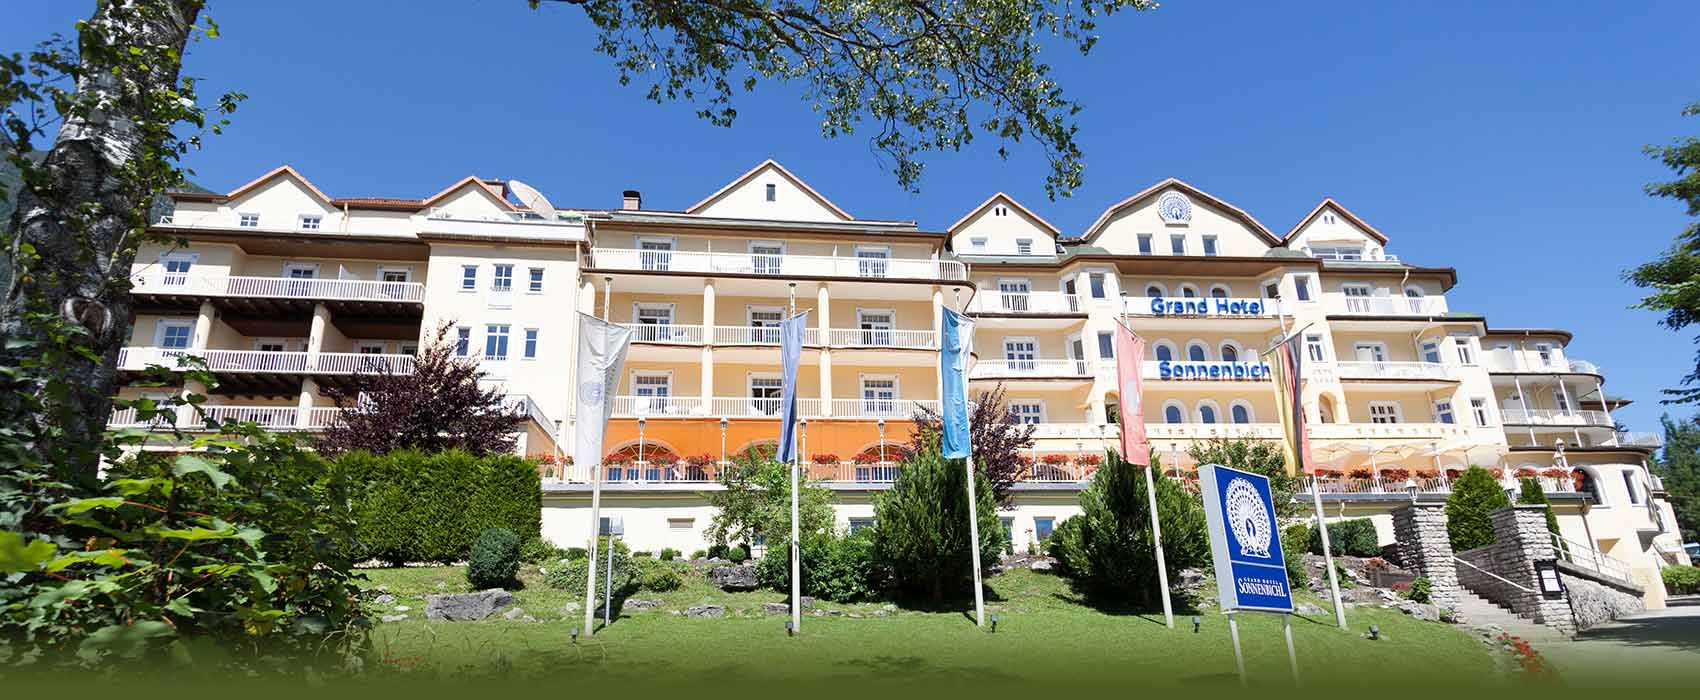 Hotels in Garmisch-Partenkirchen